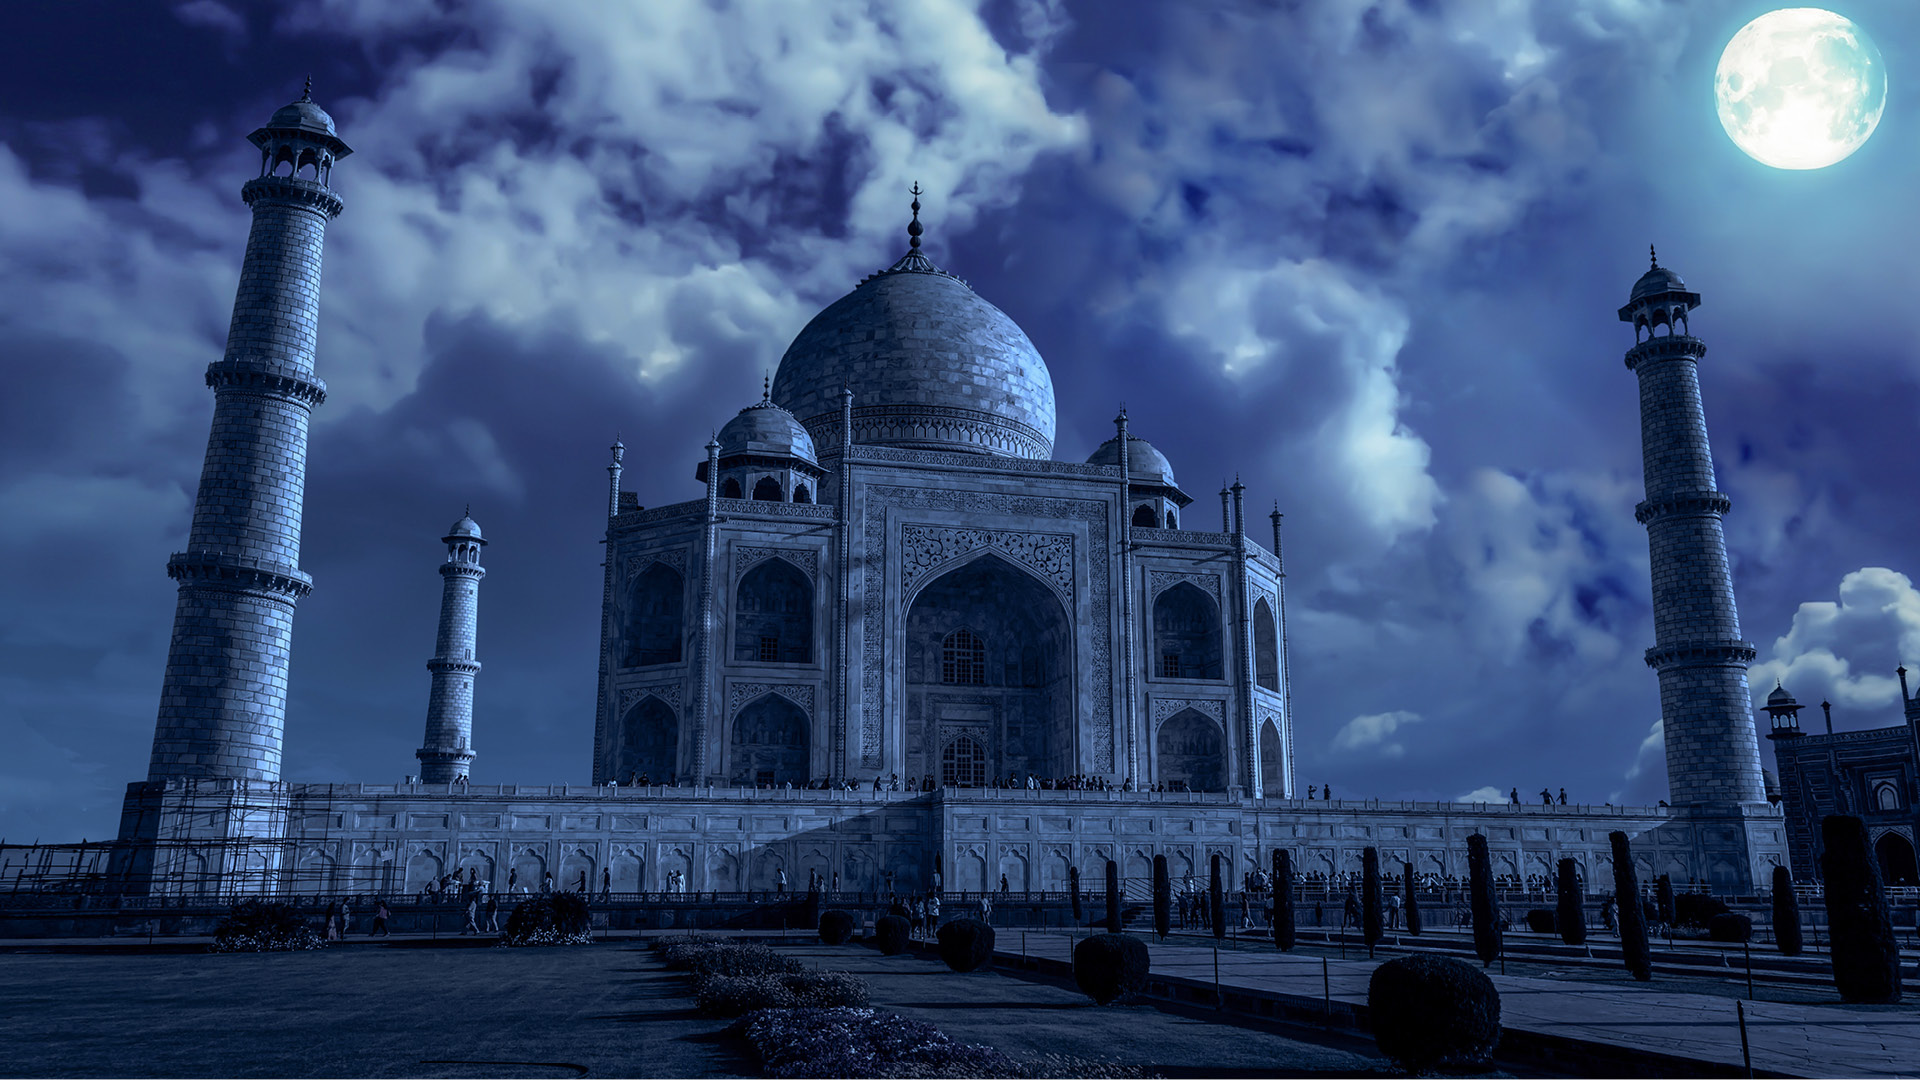 Witness the Beauty of Taj Mahal at Full Moon Night